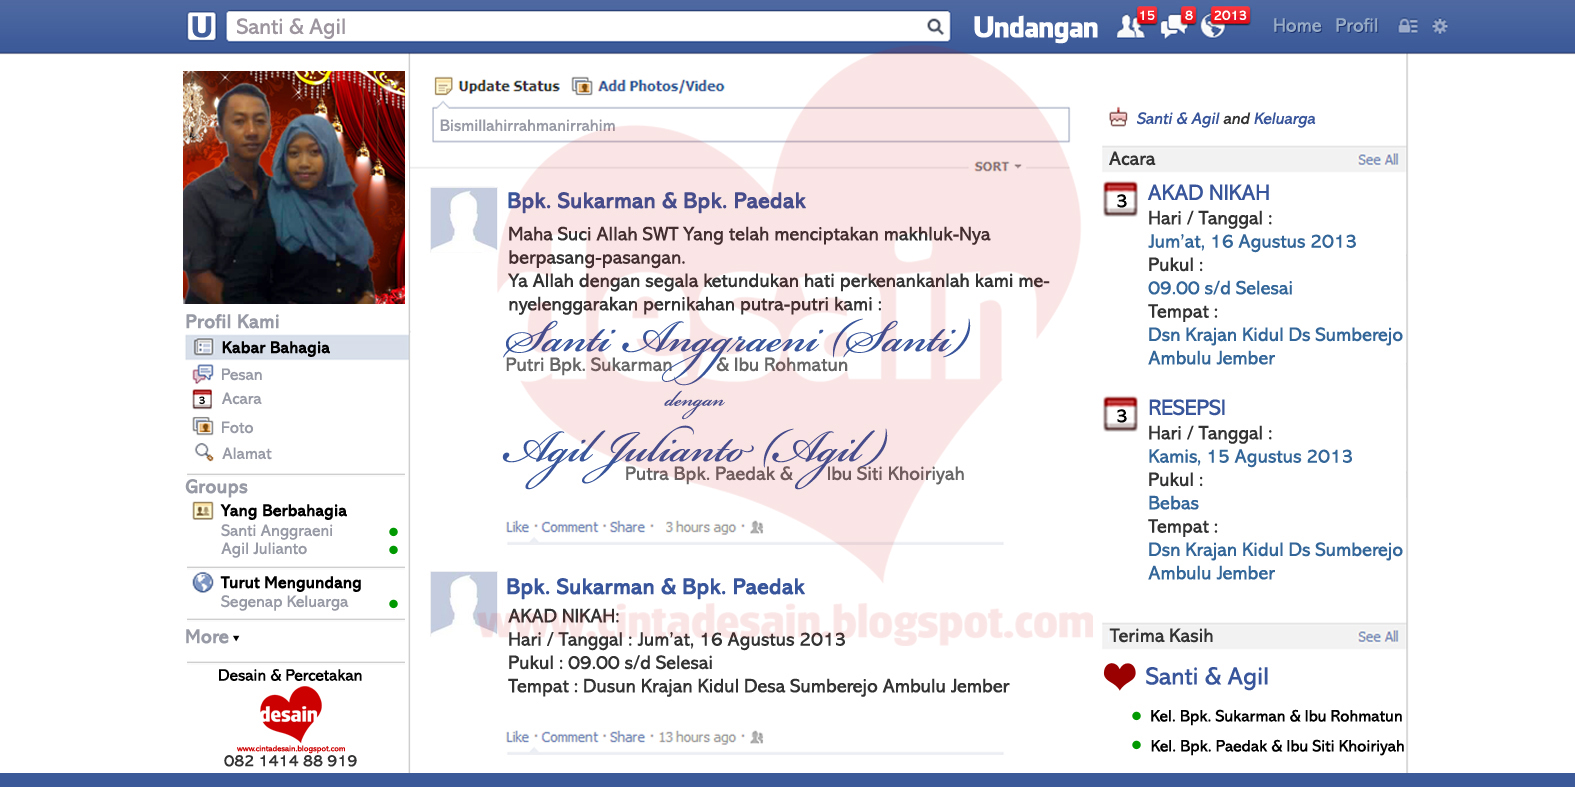 Undangan Model Facebook Format Adobe Photoshop Gratis Album Kolase